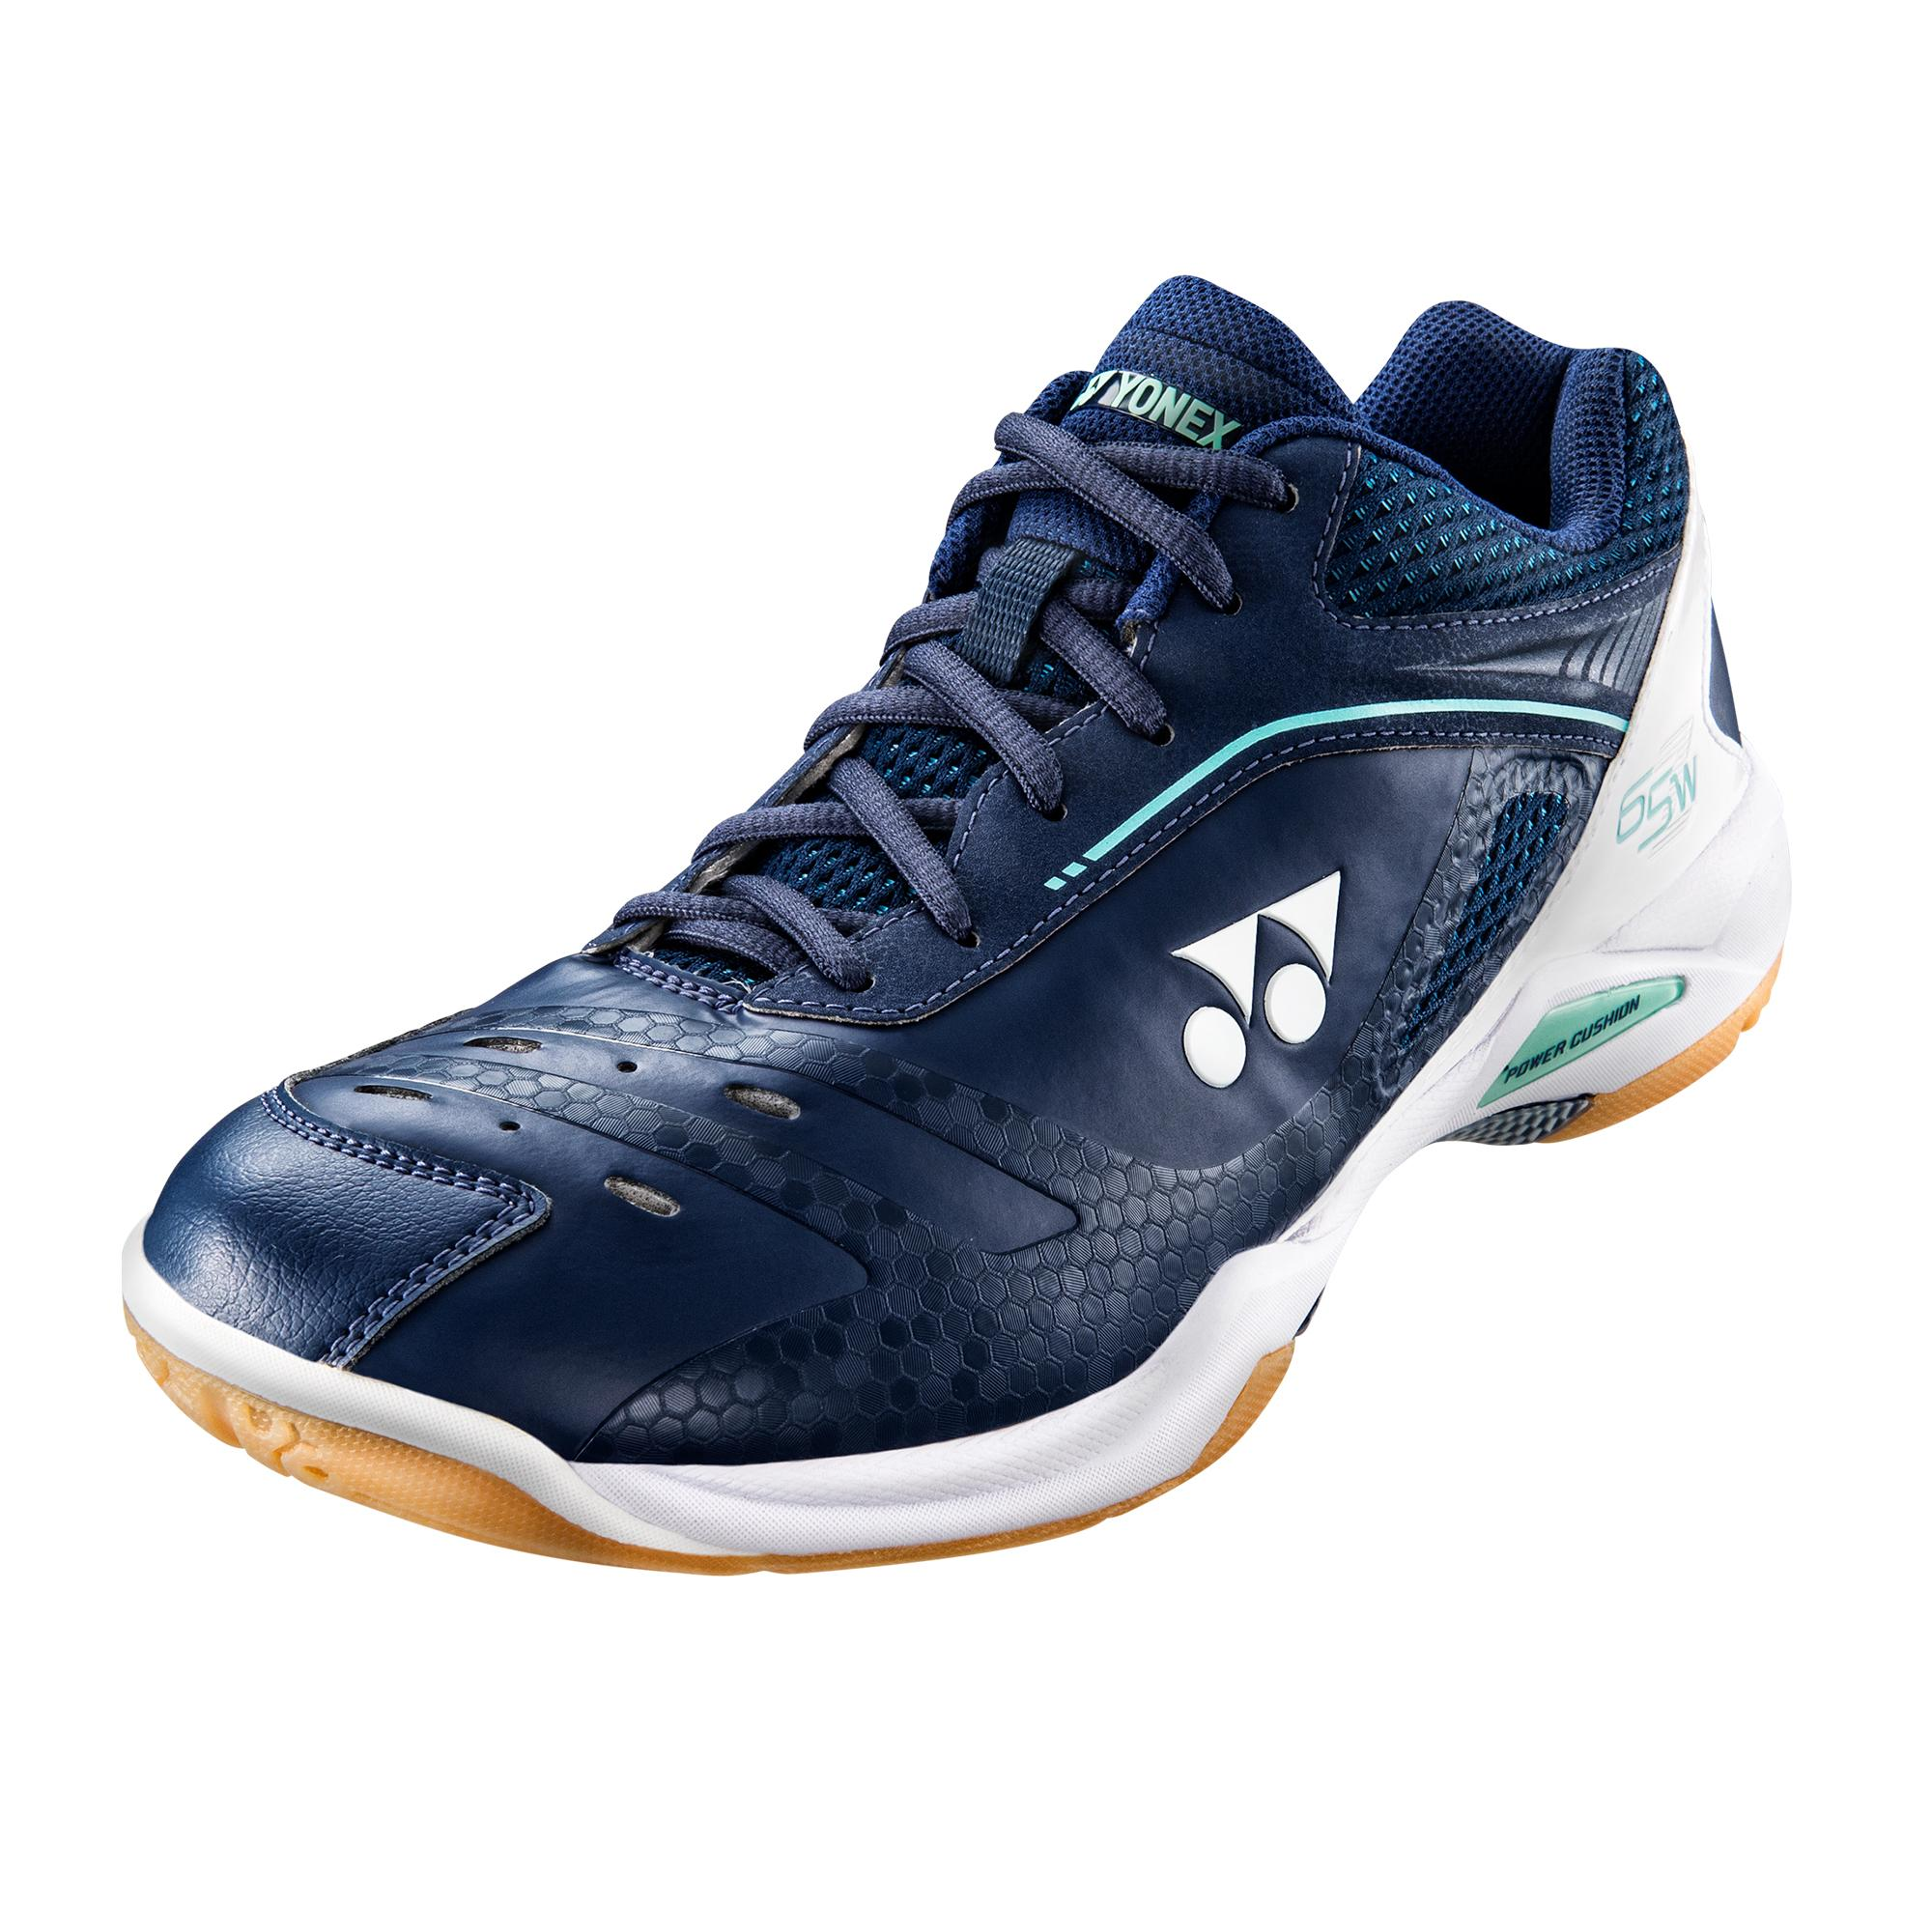 Yonex Power Cushion 65 Z Wide Sunriseclick Official Yonex Online Shop